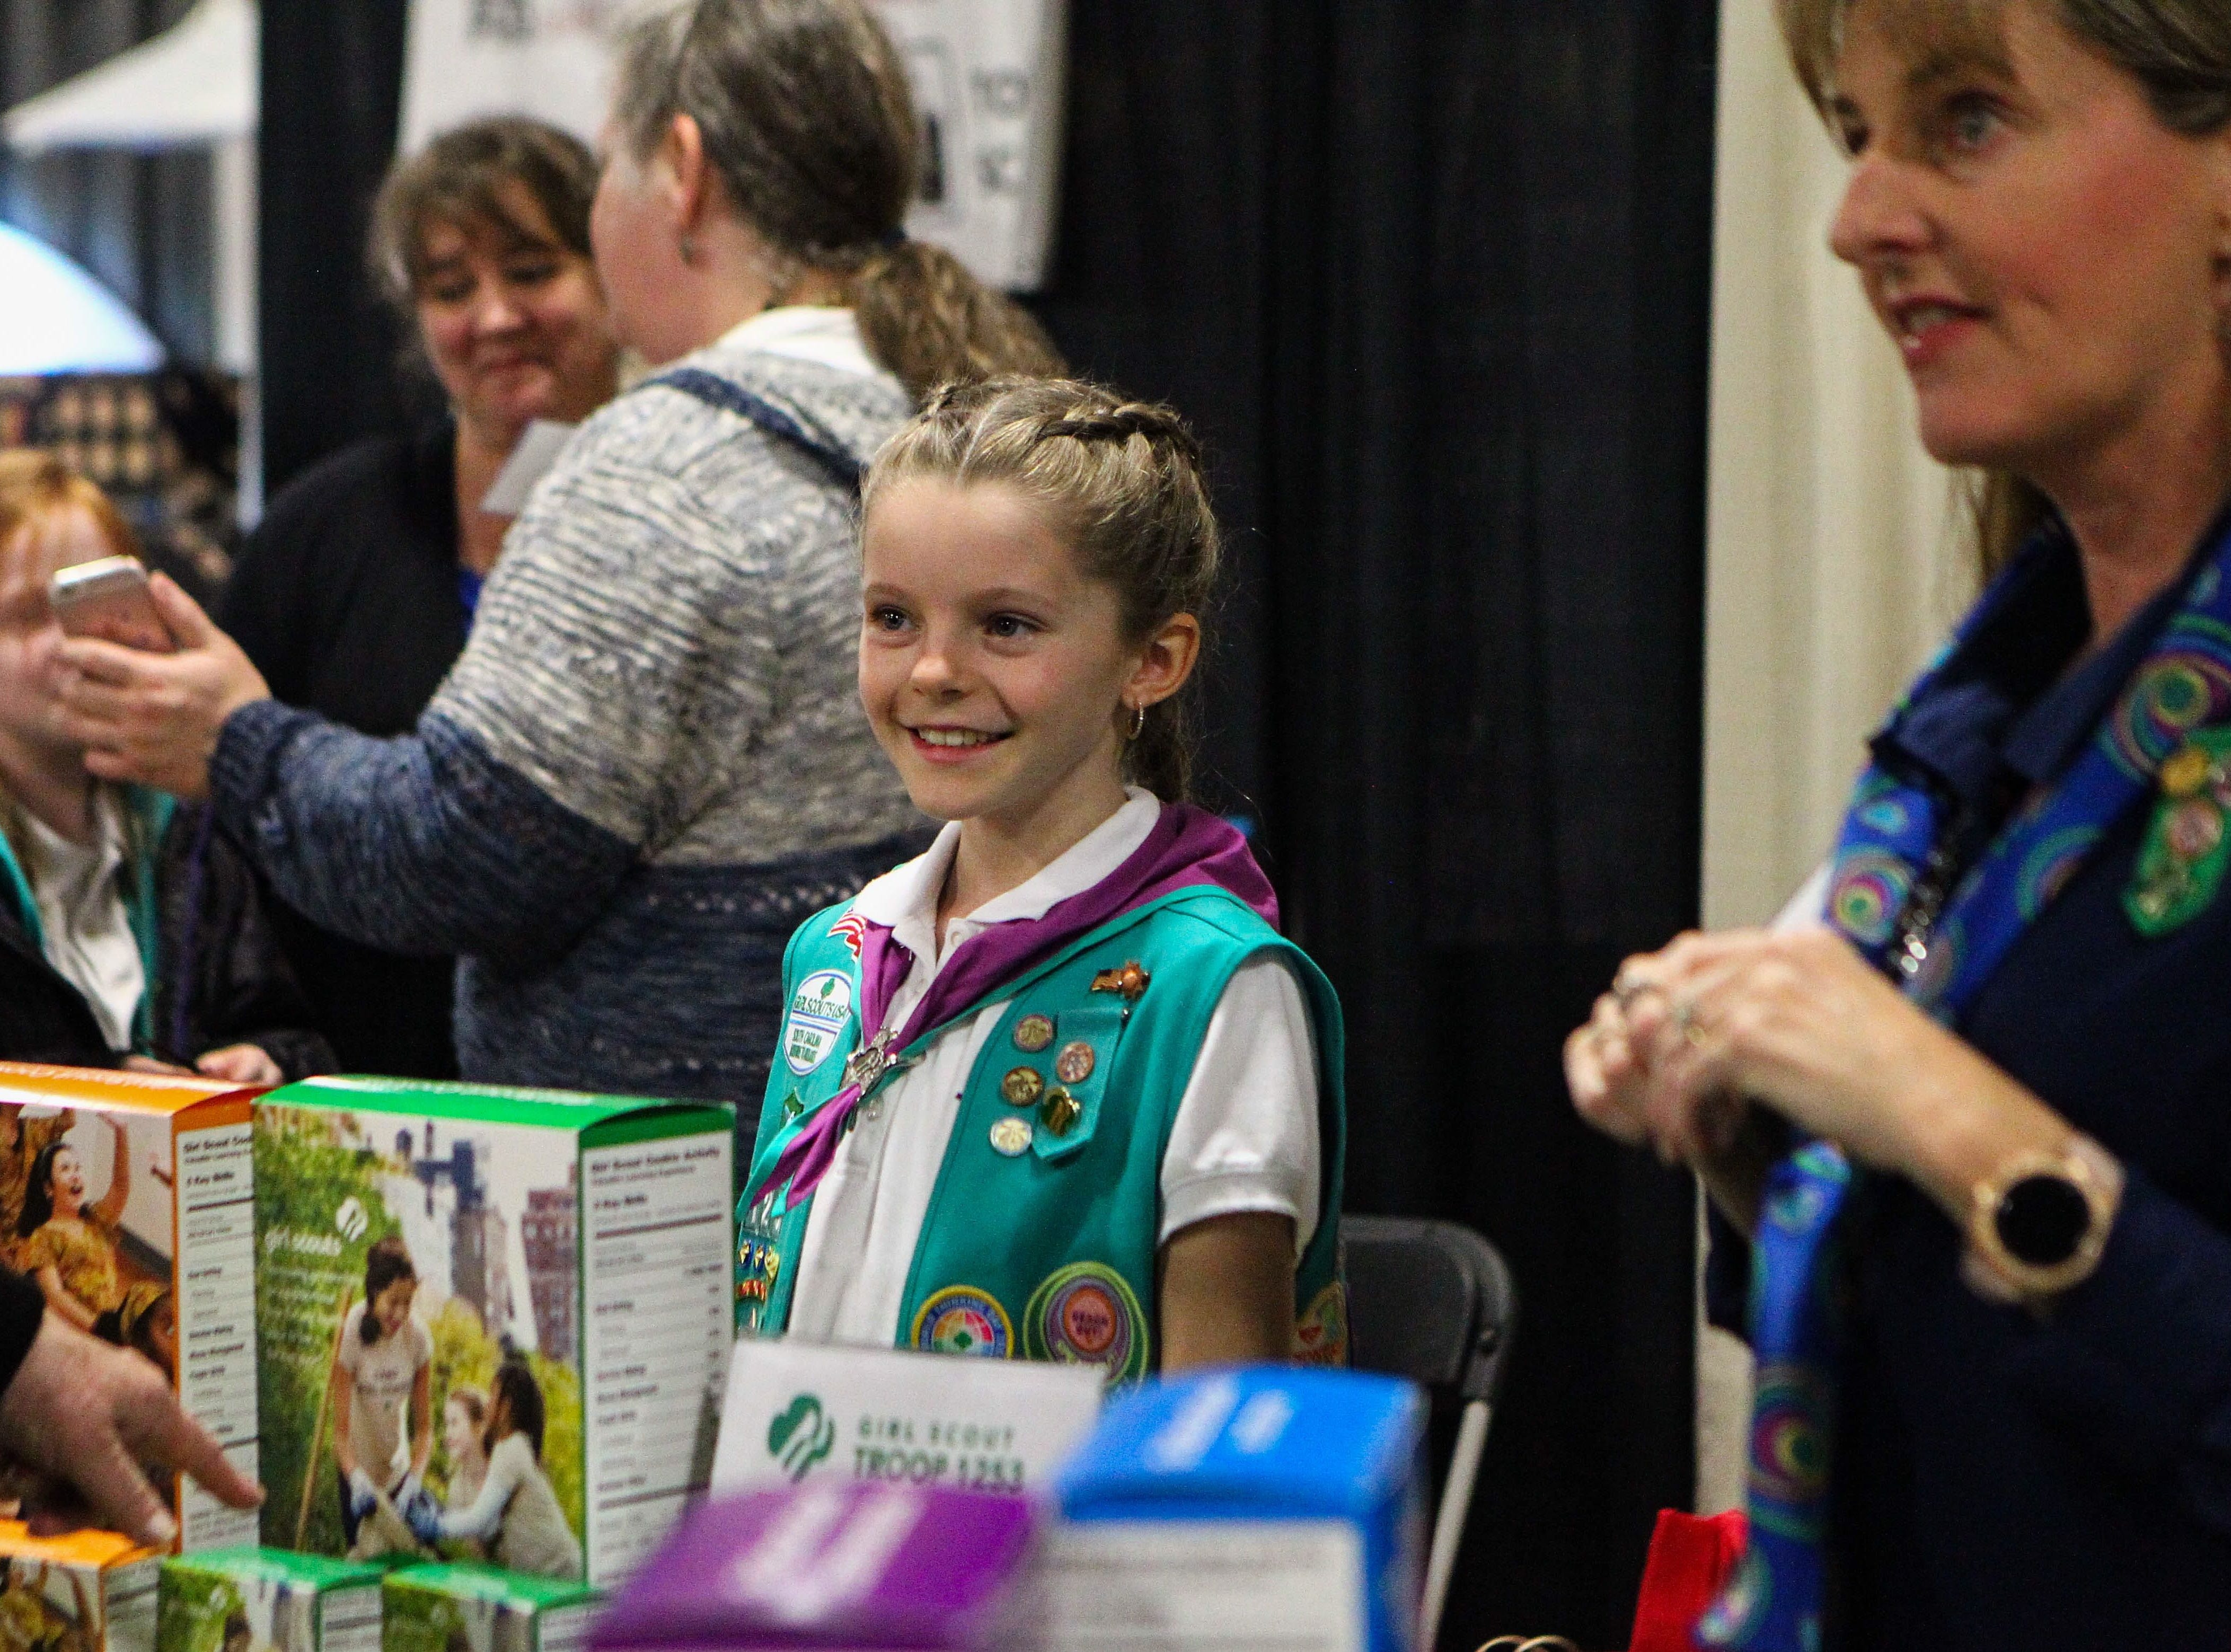 Kelli Kivett, 10, sells girl scout cookies with her mom Dee Kivettat the Southern Home and Garden Show at the Greenville Convention Center on Friday, March 1, 2019. Kelli is part of The Girl Scout Troop 1253.